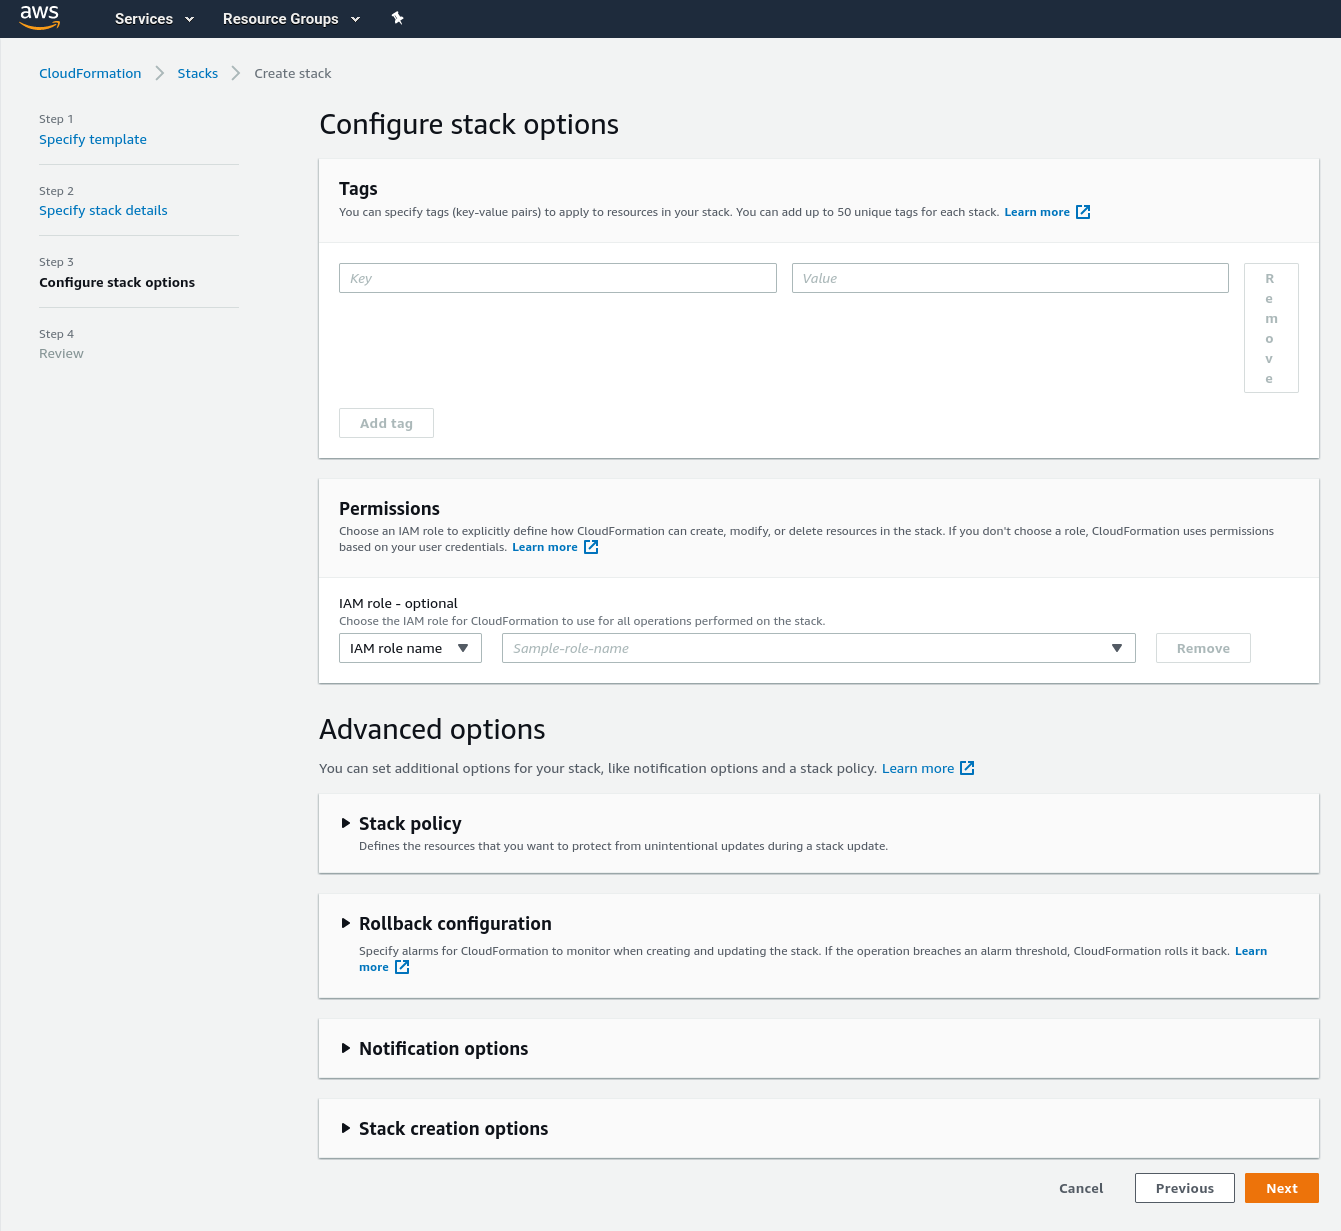 CloudFormation template to set up Fargate image scanning - The configure stack options step